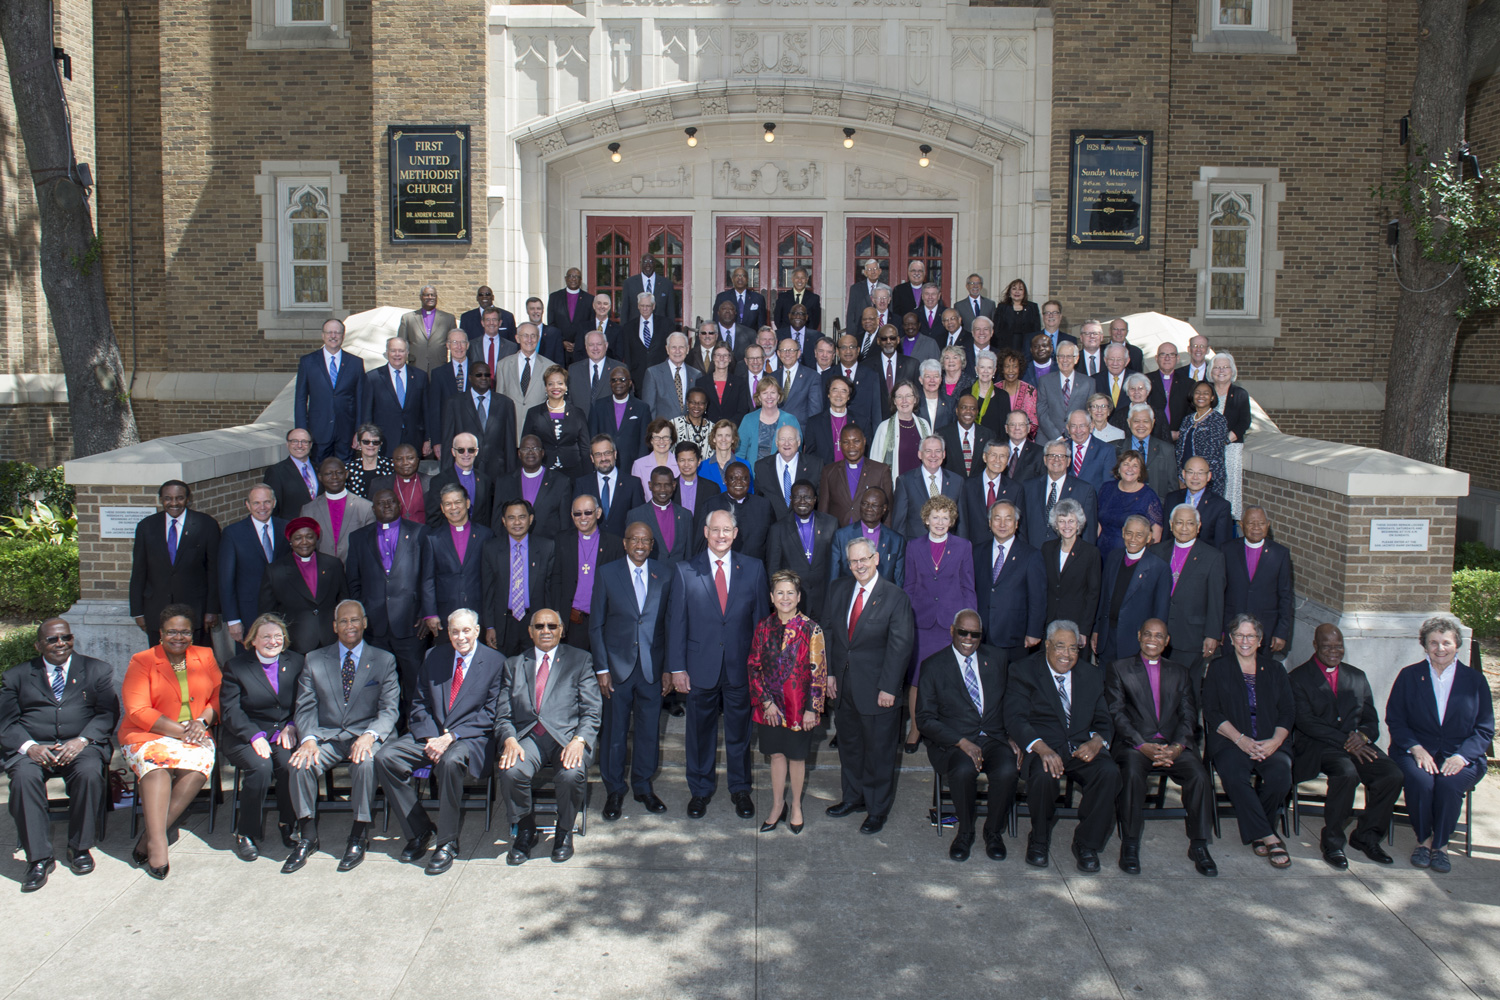 The Council of Bishops consists of all of the bishops of The United Methodist Church.